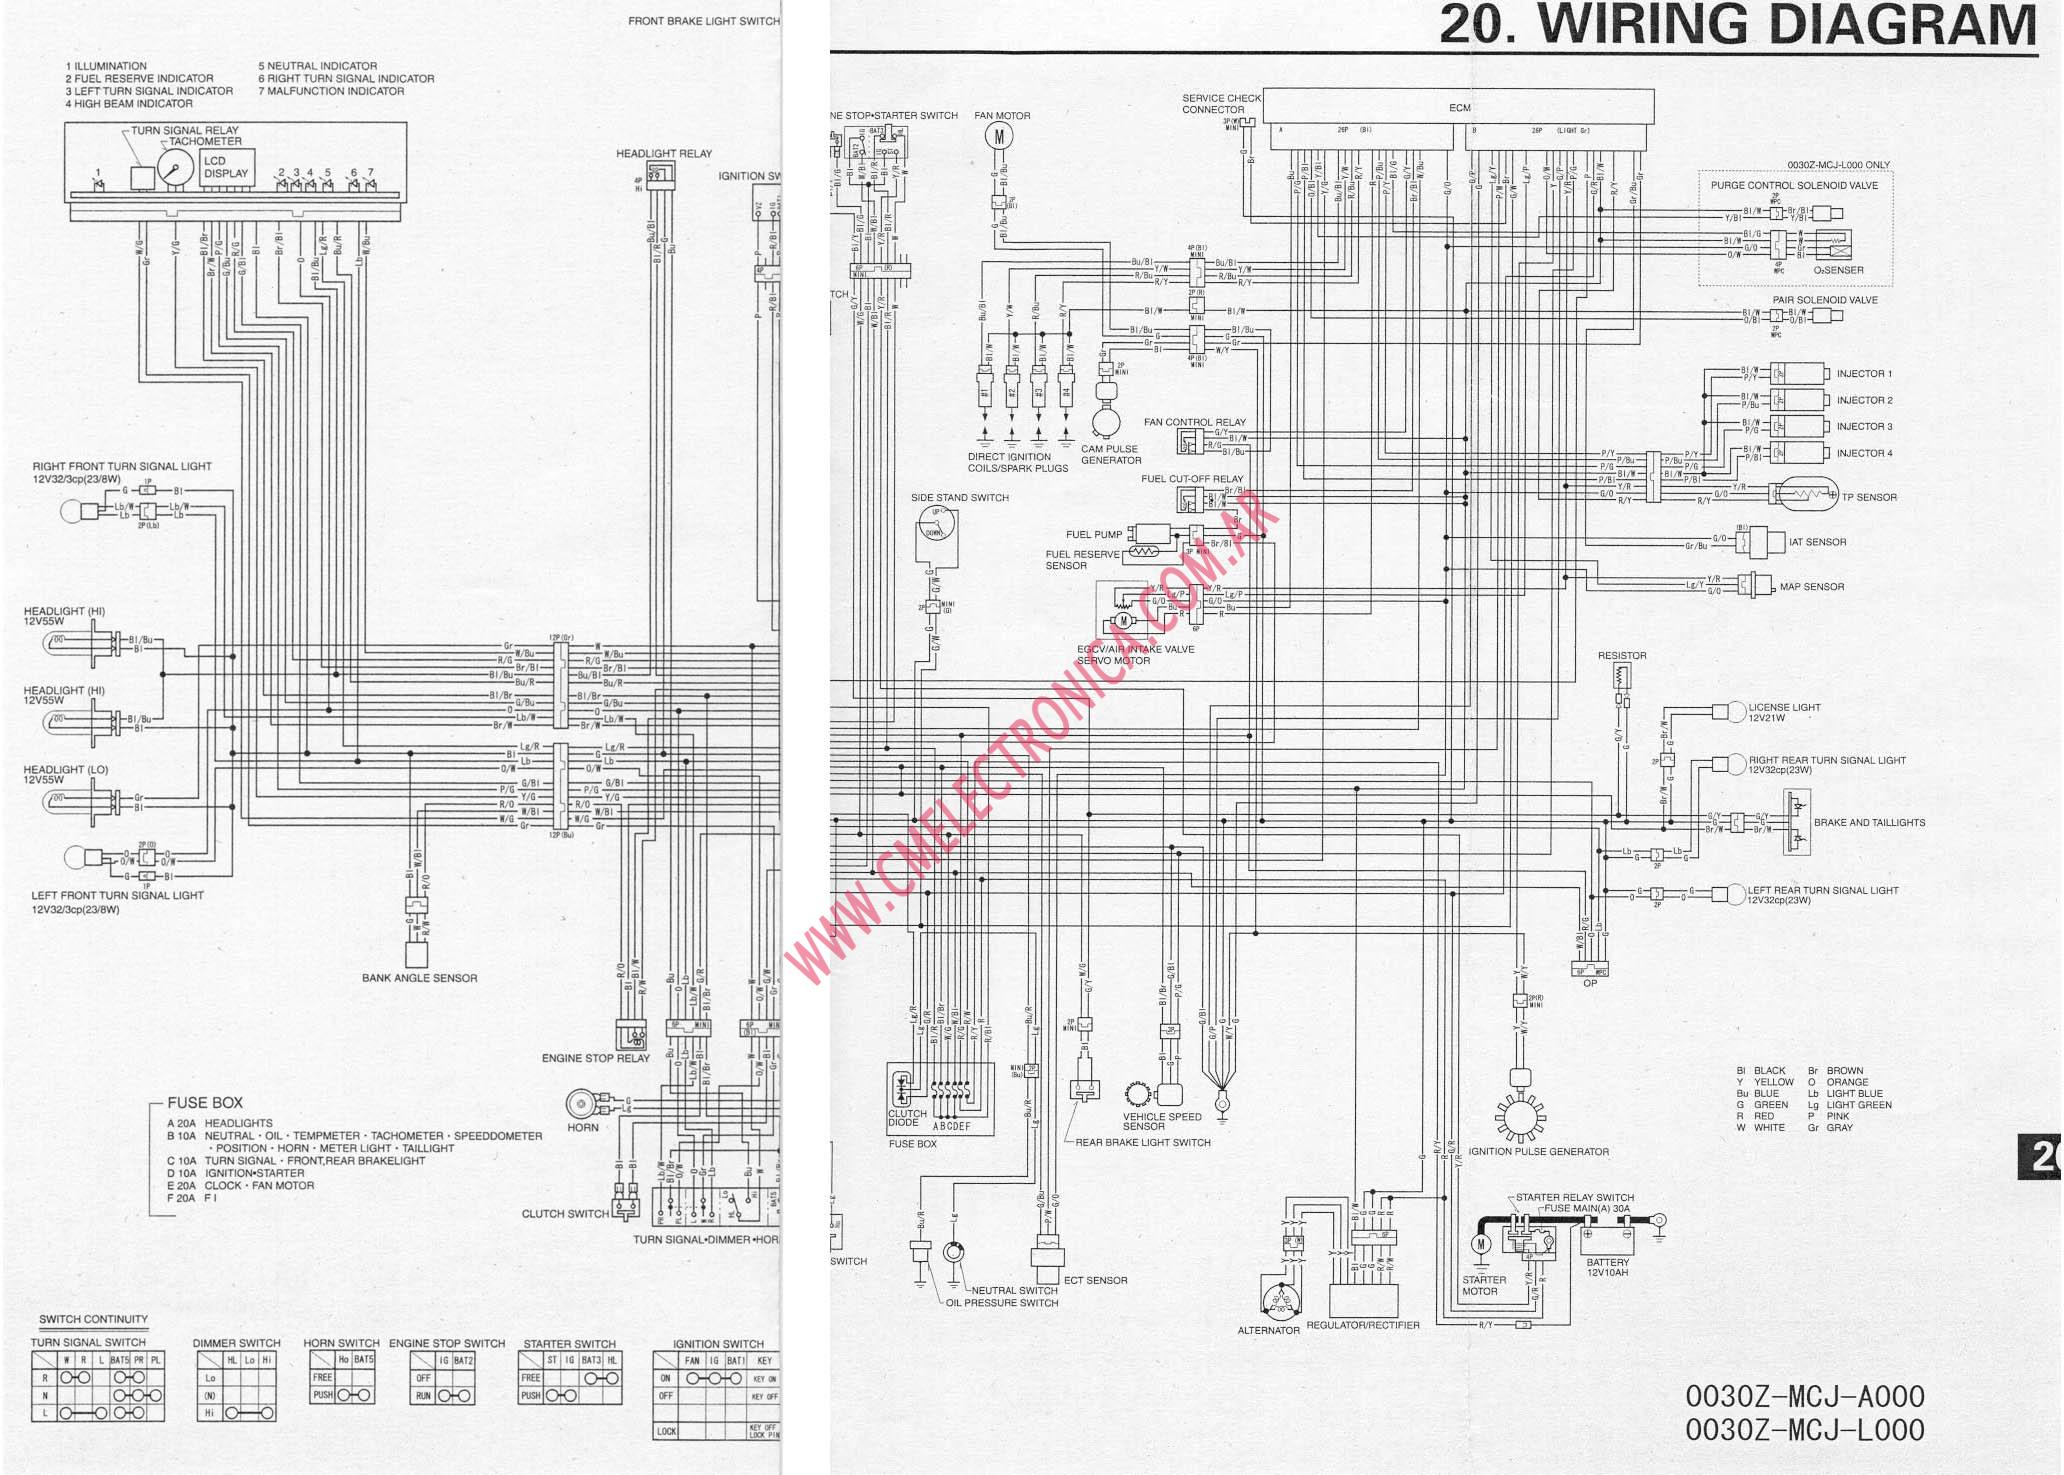 Honda 954 Wiring Diagram Simple Wiring Diagram 2002 Cbr 954rr Wiring  Diagram Cbr 929 Rr Wiring Diagram